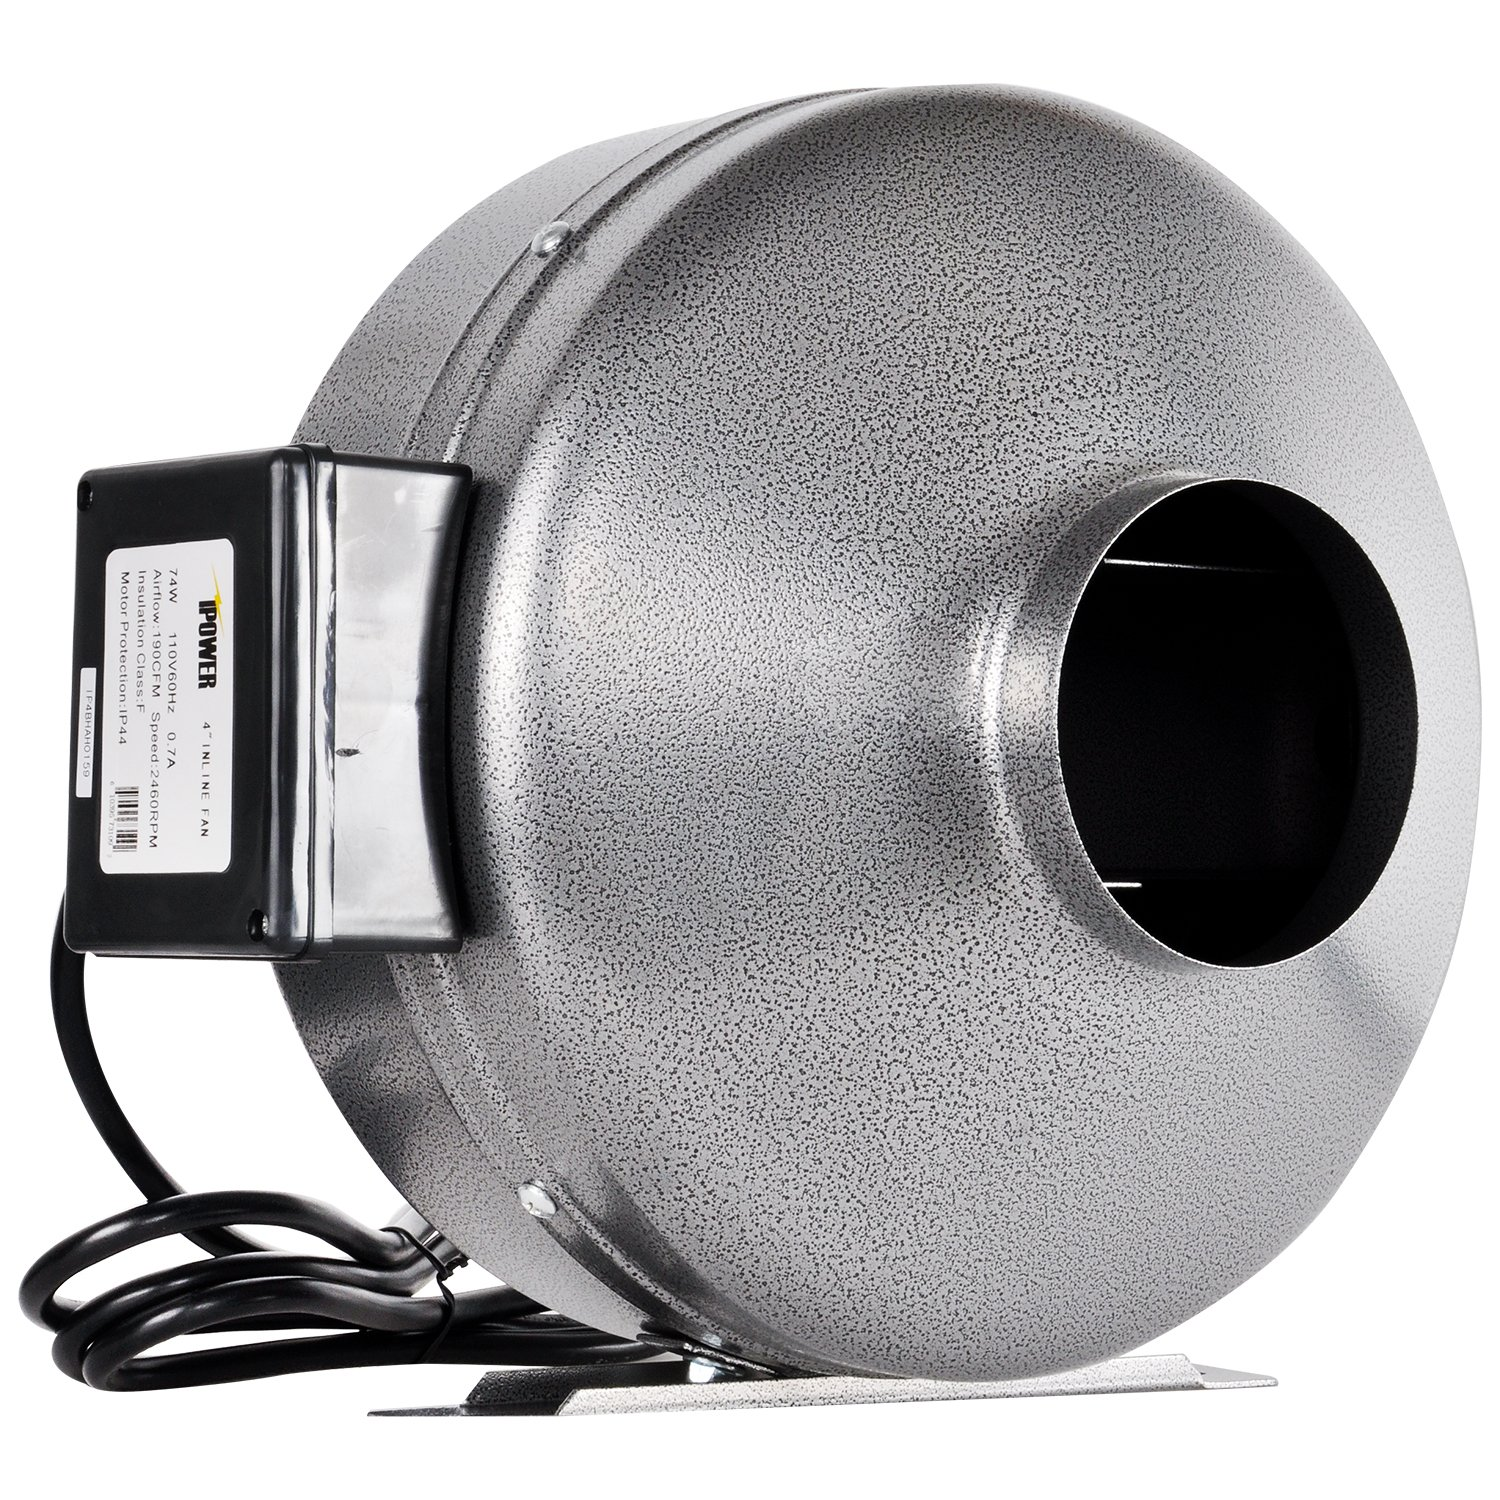 iPower 10 Inch 862 CFM Inline Duct Ventilation Fan HVAC Exhaust Blower for Grow Tent, Grounded Power Cord